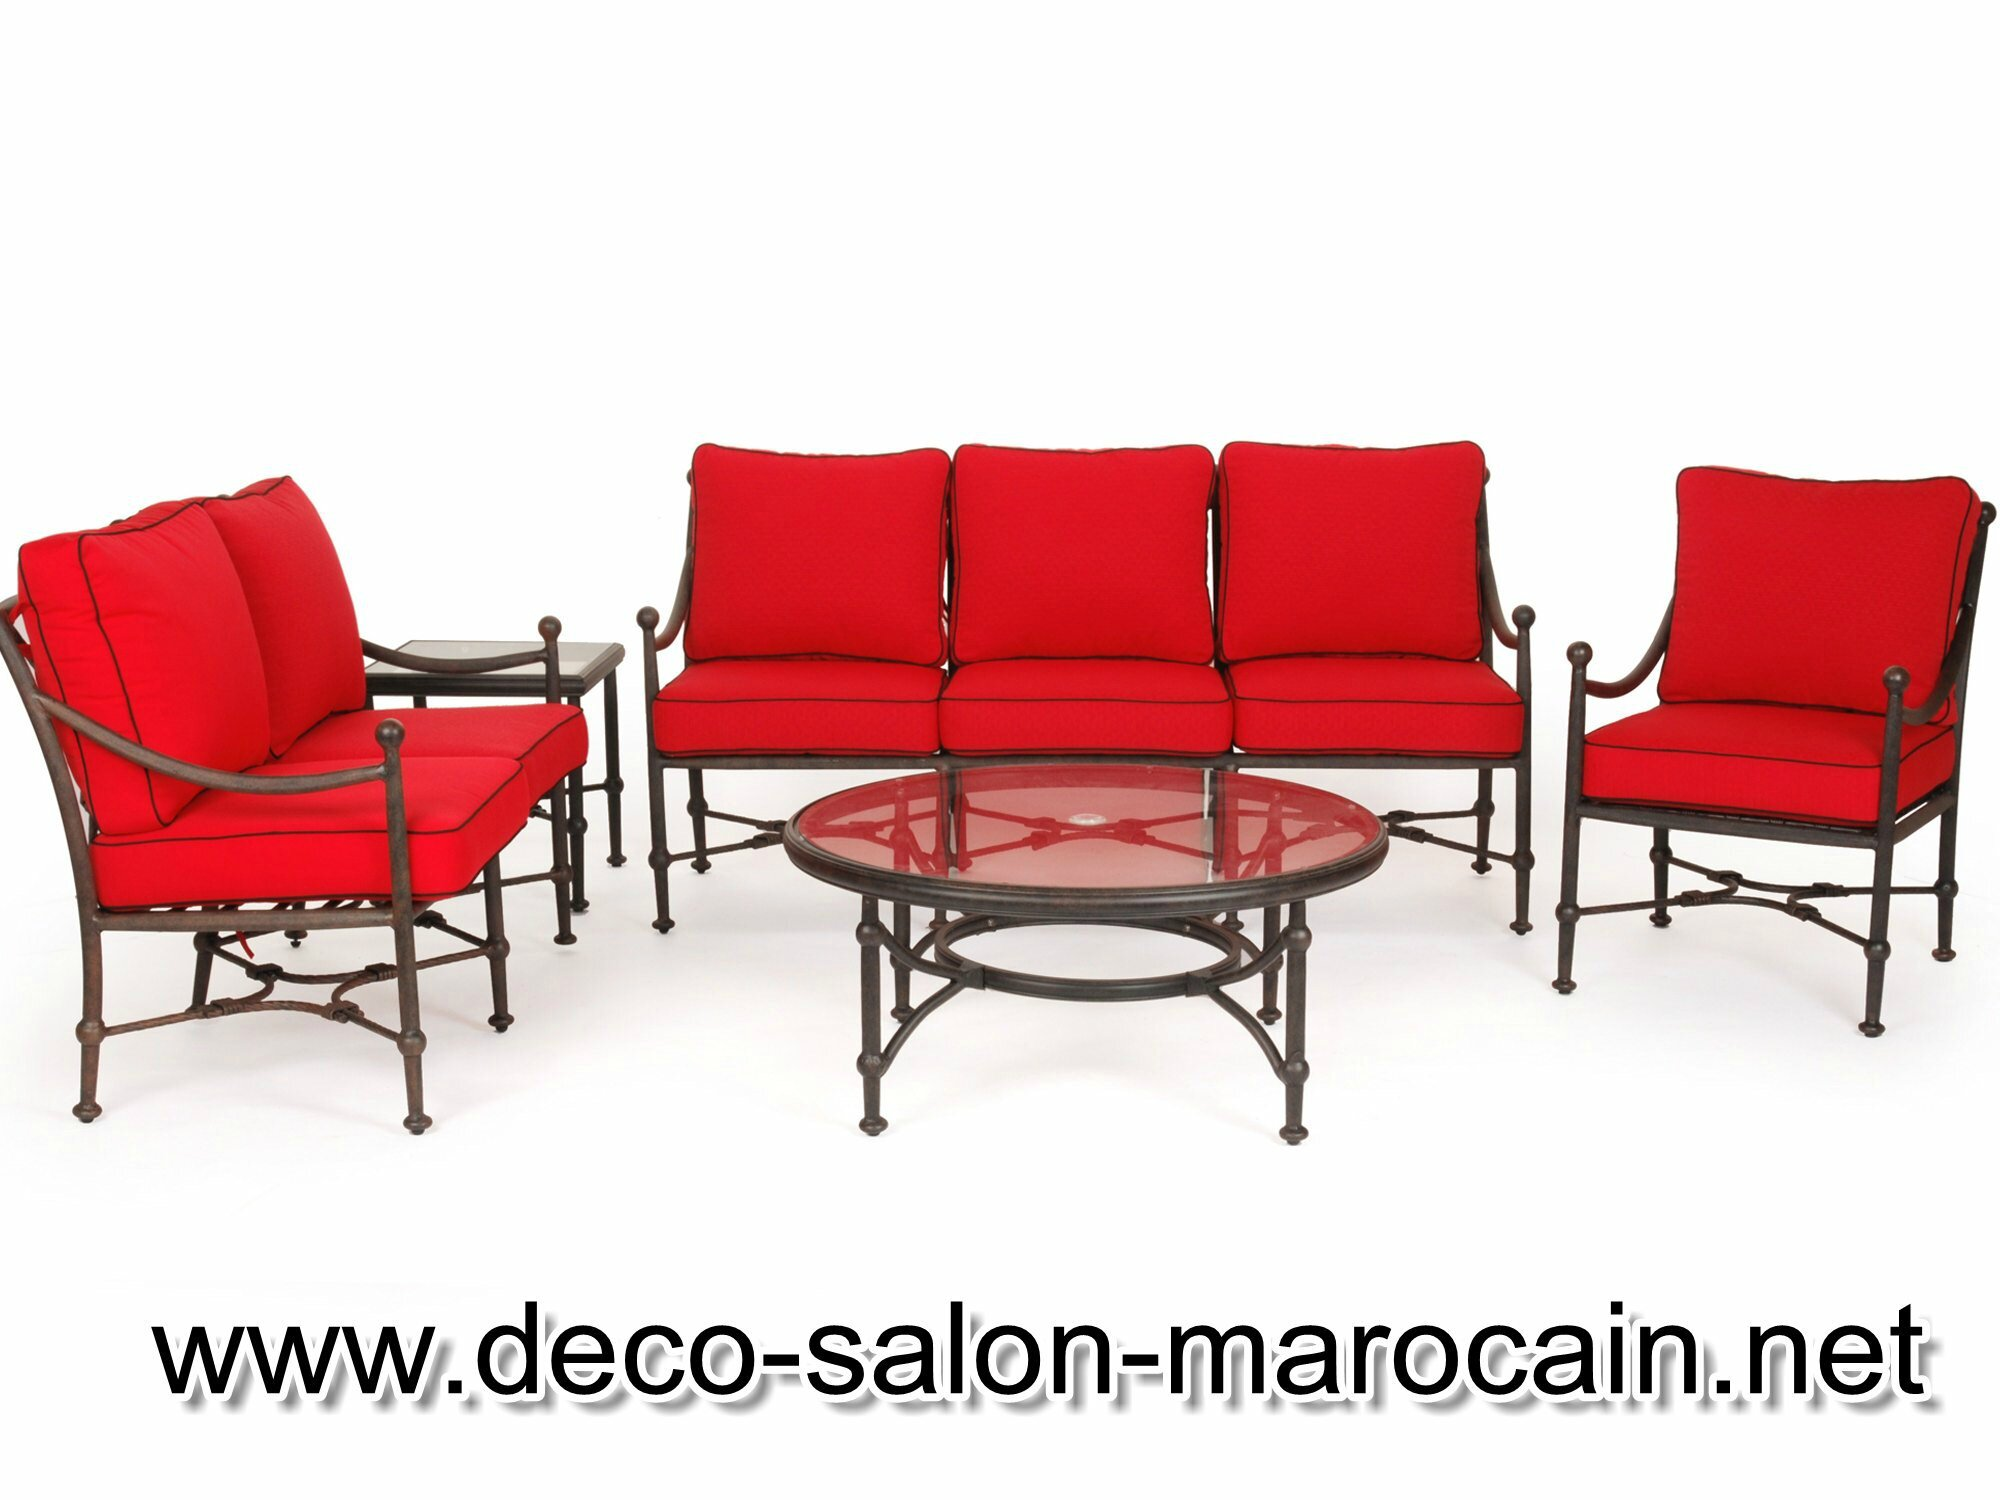 Chaise Fer Forge Style Marocain Stunning Salon De Jardin Fer Forge Style Marocain